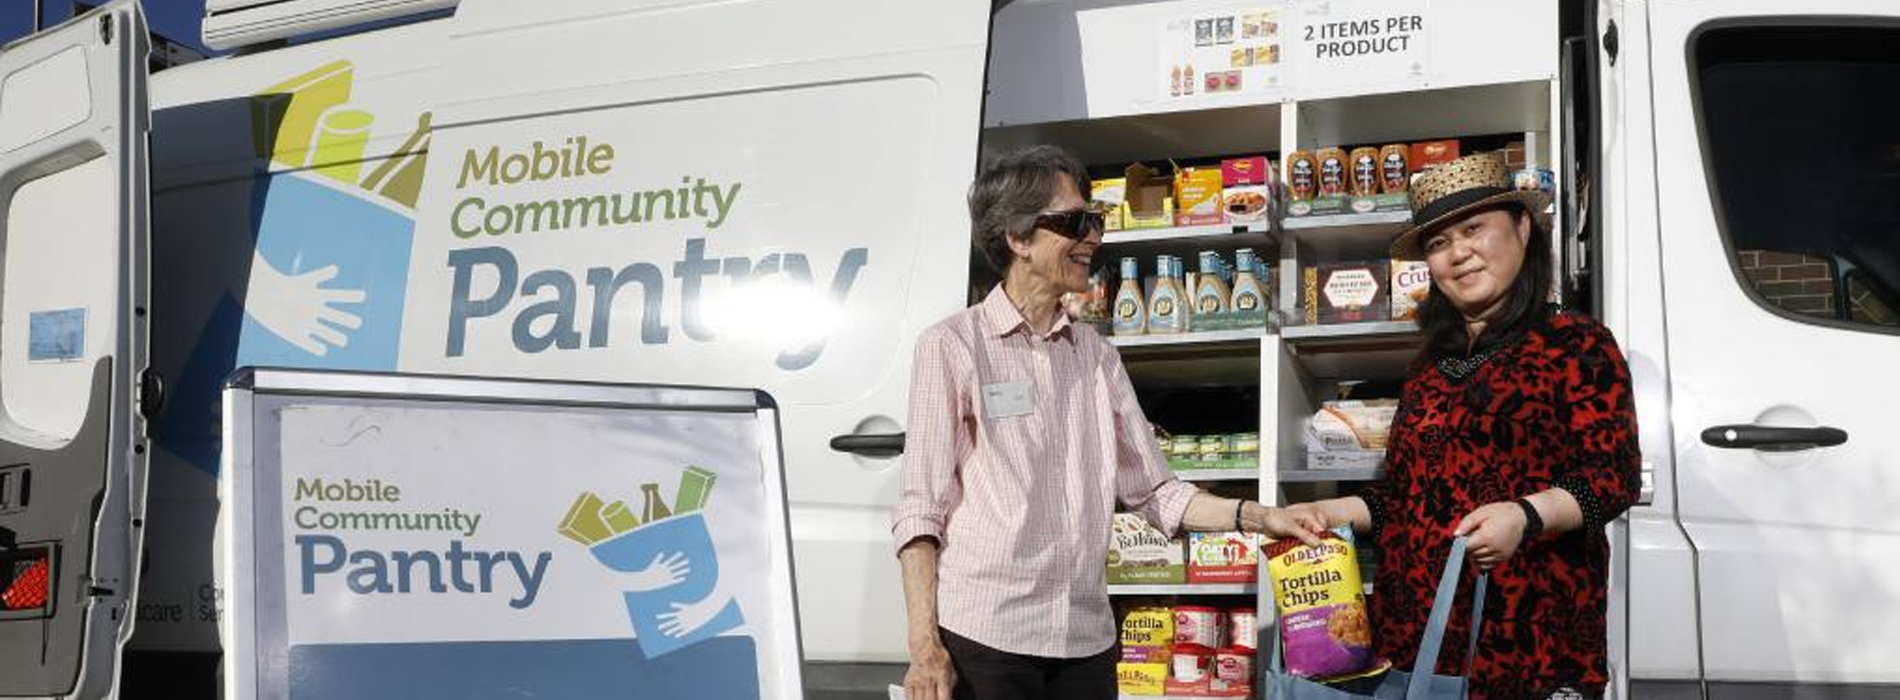 [10] Mobile Community Pantry